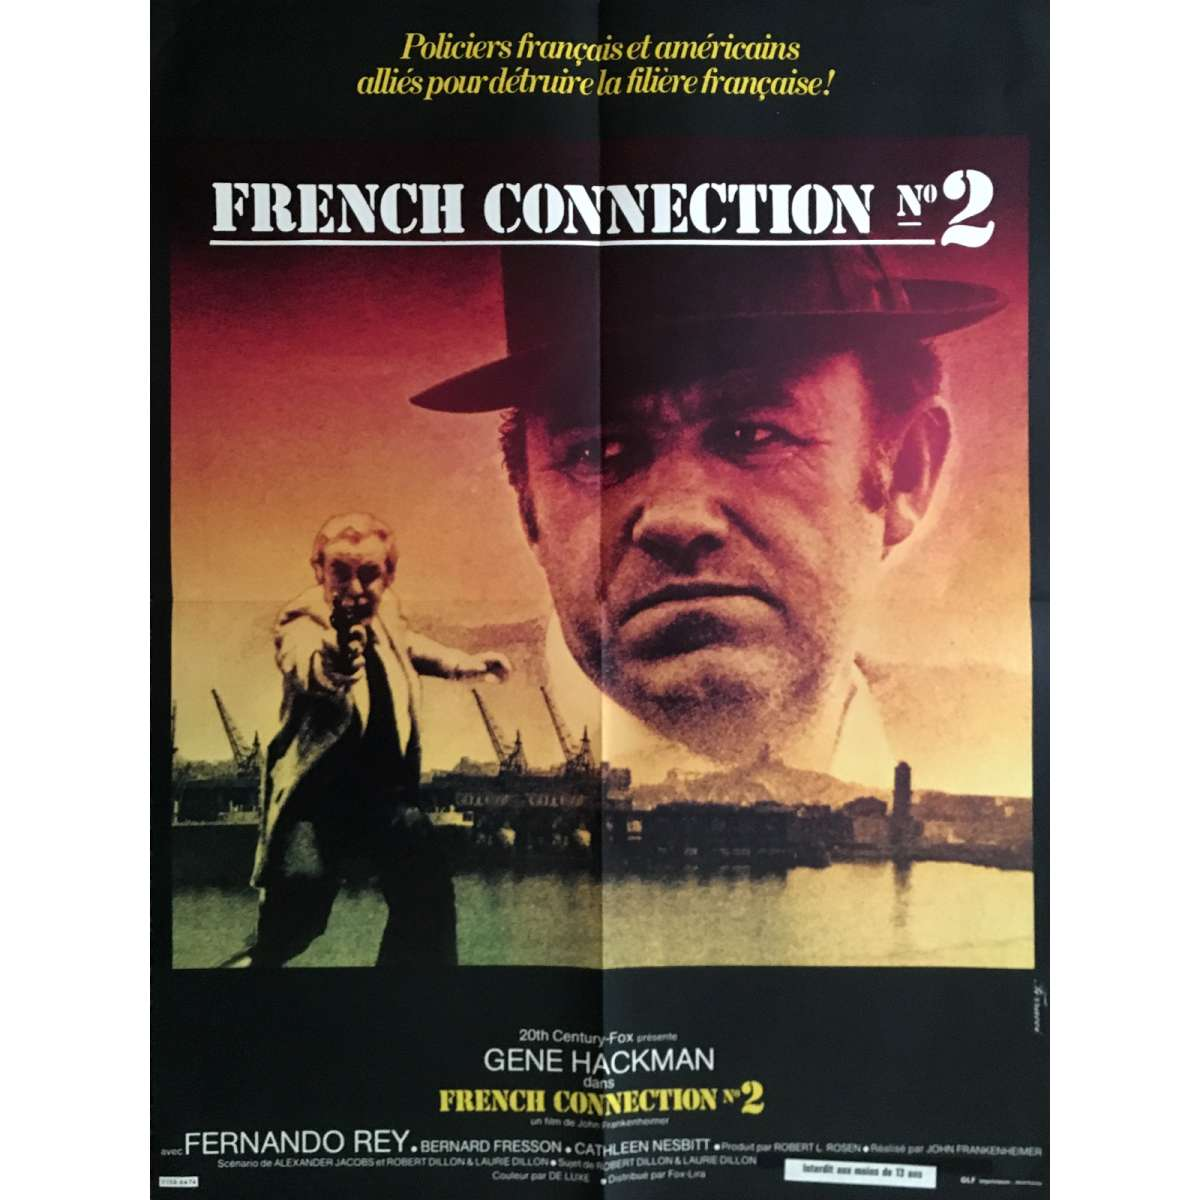 FRENCH CONNECTION II Movie Poster 23x32 in.